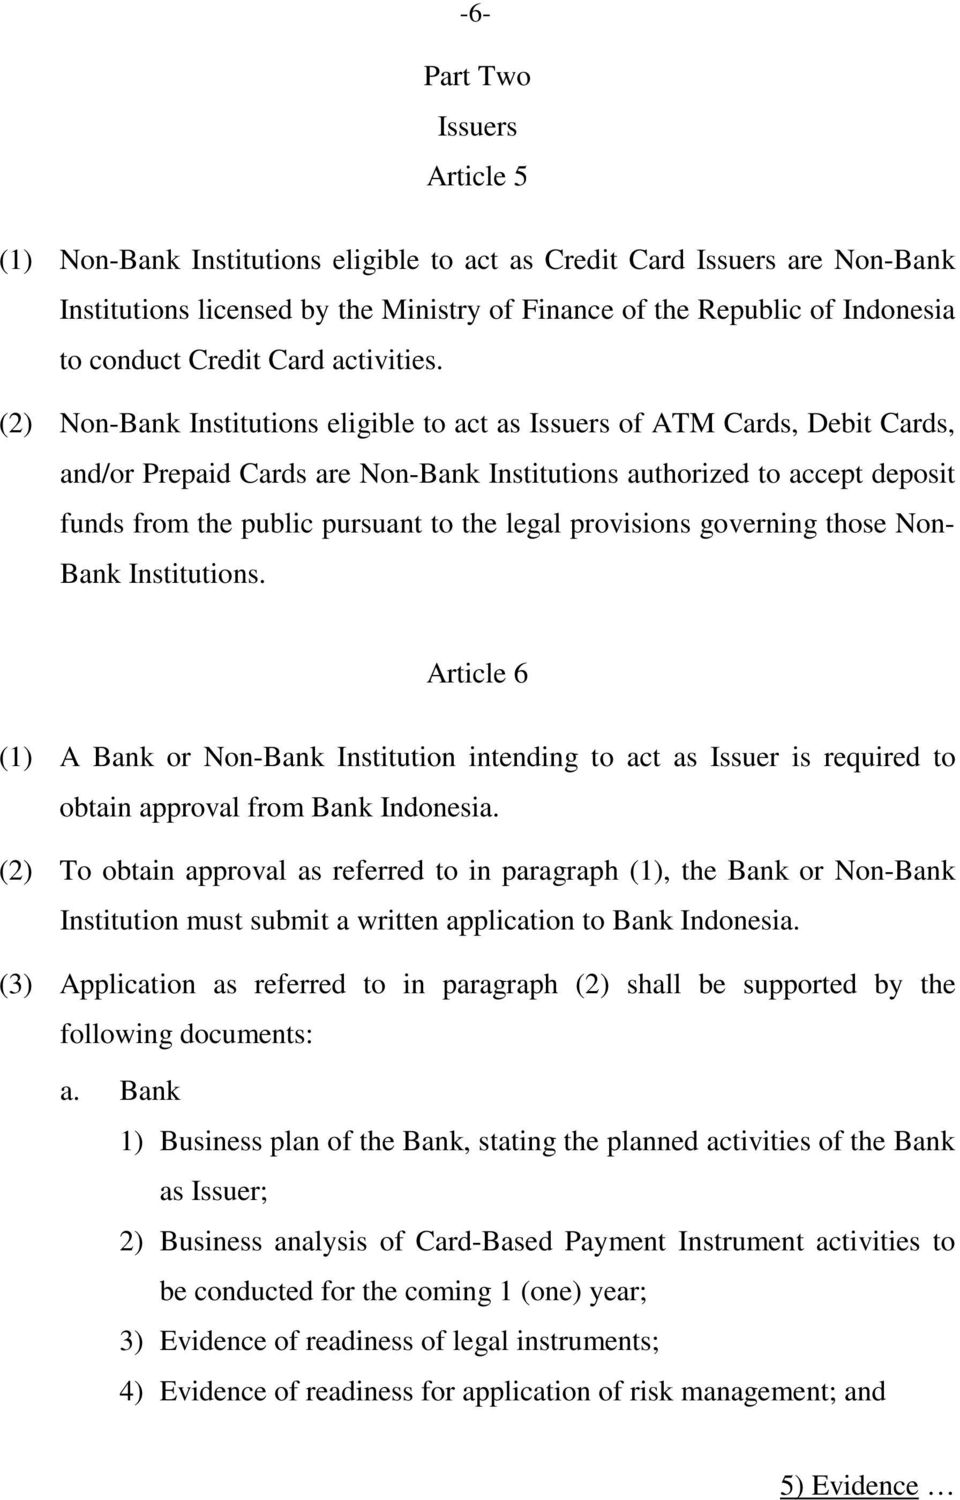 (2) Non-Bank Institutions eligible to act as Issuers of ATM Cards, Debit Cards, and/or Prepaid Cards are Non-Bank Institutions authorized to accept deposit funds from the public pursuant to the legal